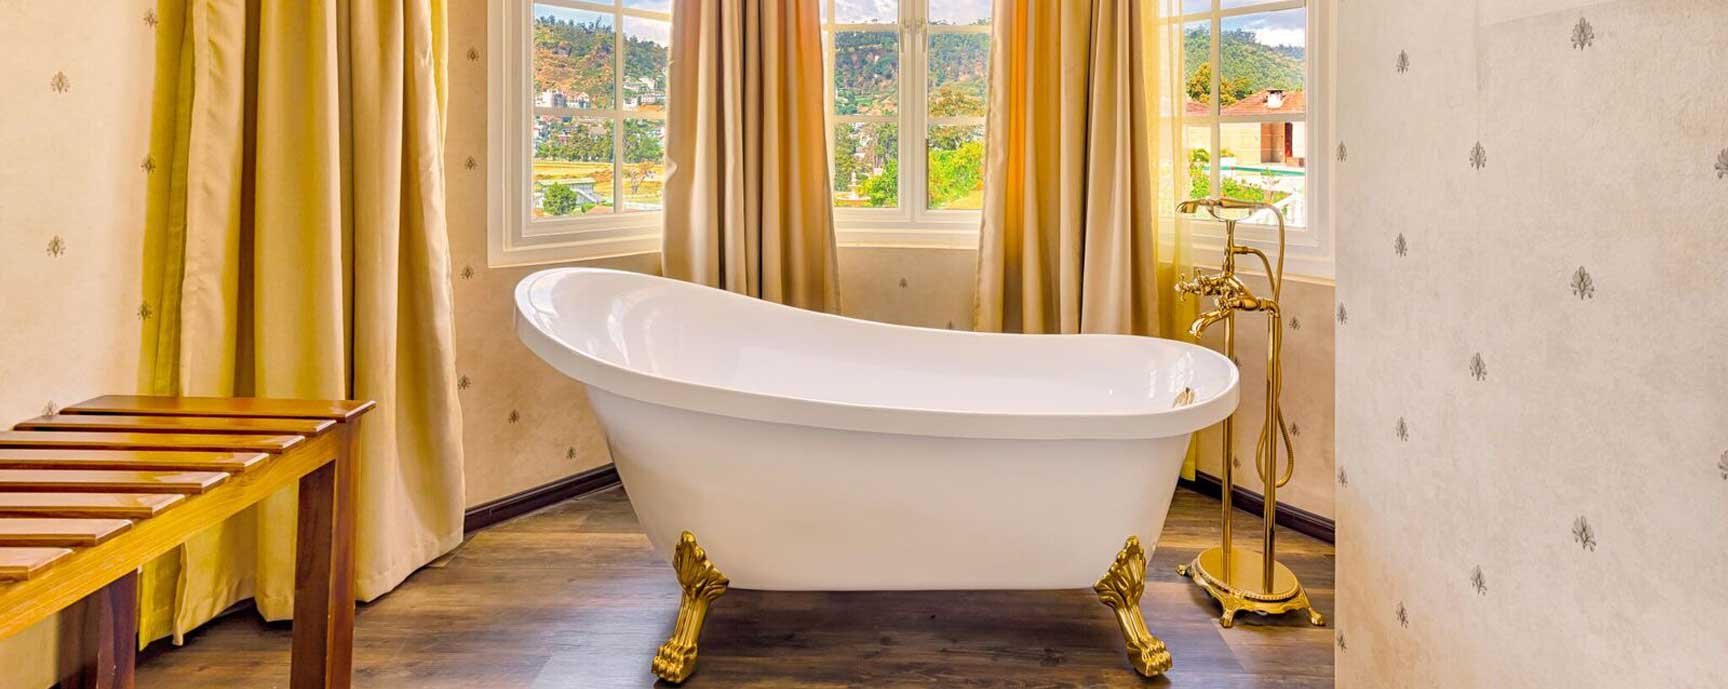 Bathtub overviewing a scenic view of nature